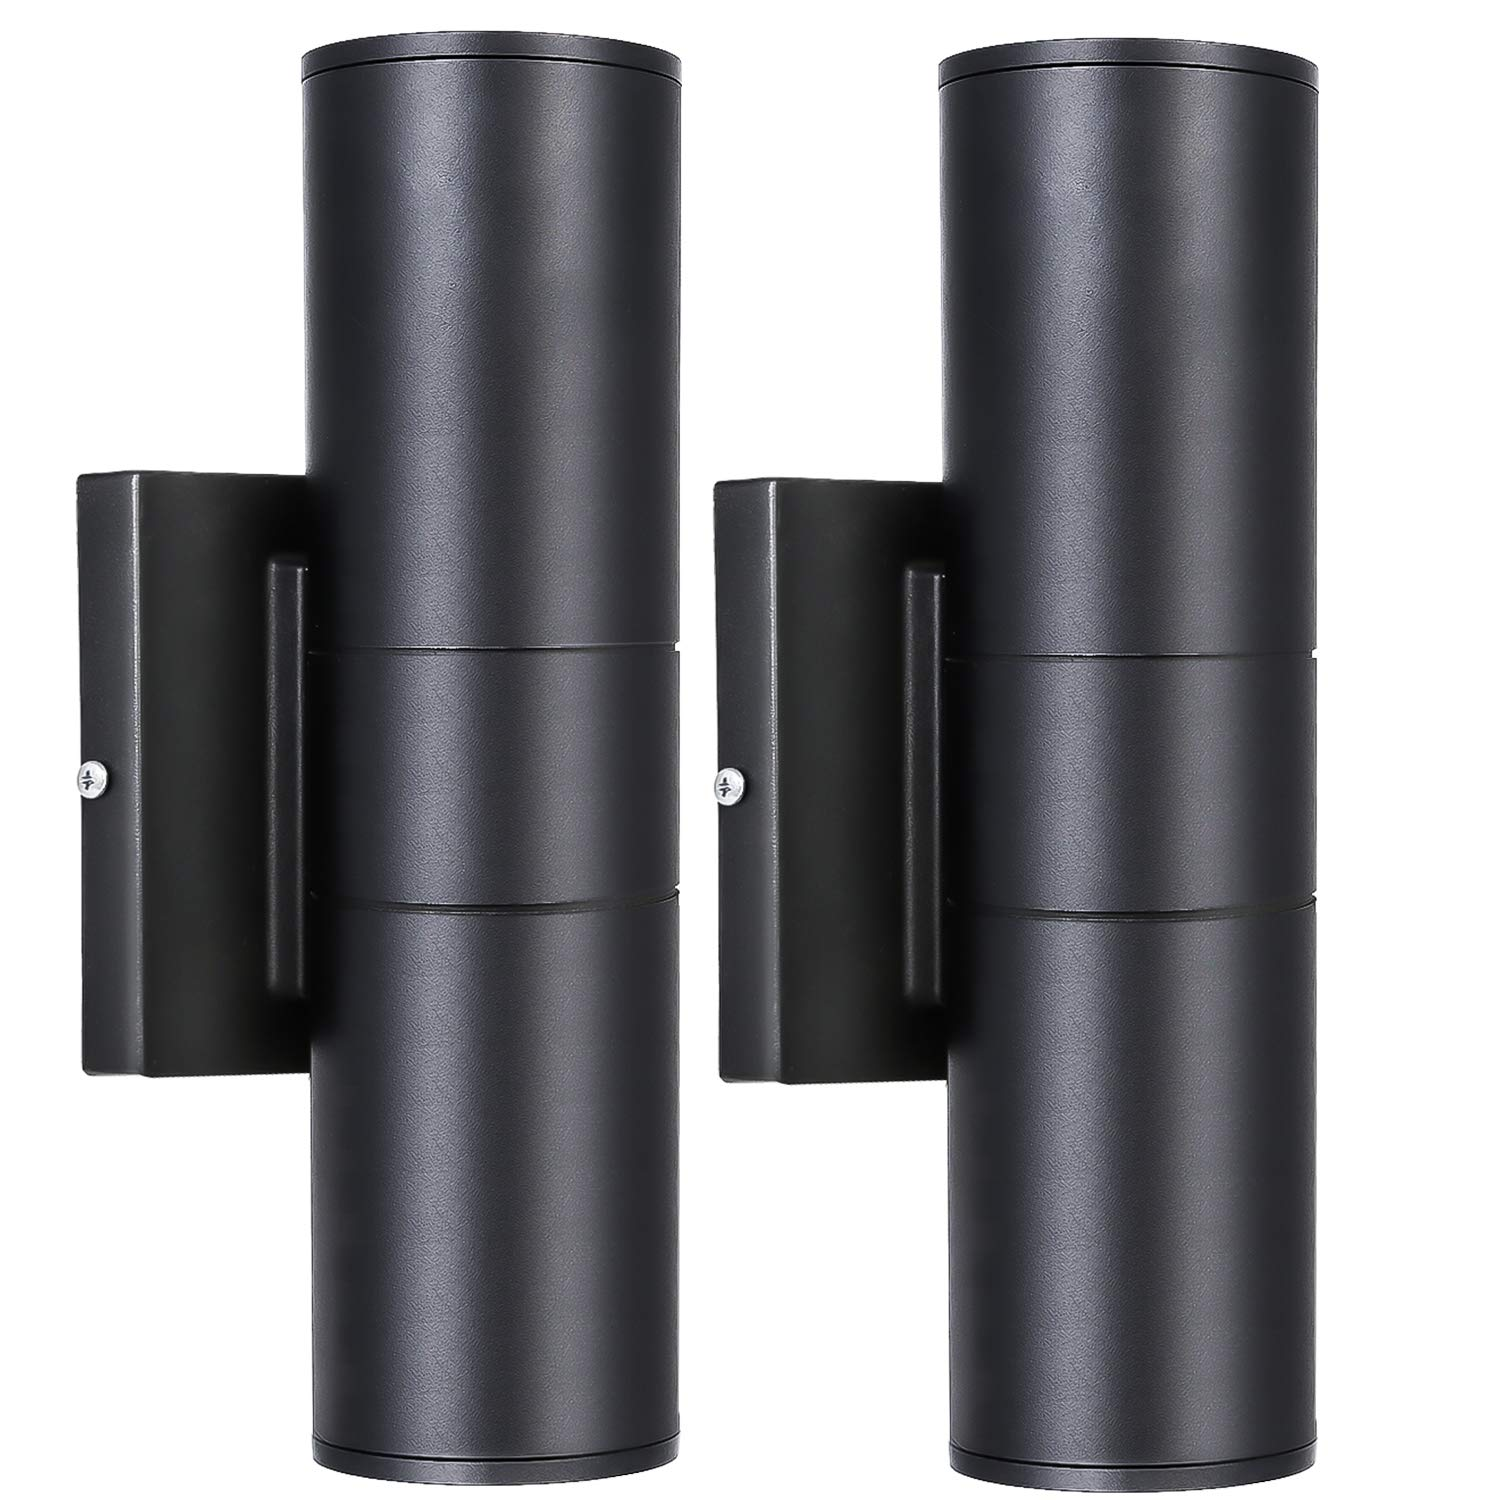 Hykolity LED Outdoor Wall Mount Cylinder Light, 20W Up and Down Wall Lantern Deco Light, 1400lm, 3000K Warm White, Waterproof Architectural Black, for Door Way, Corridor, Garage - 2 Pack